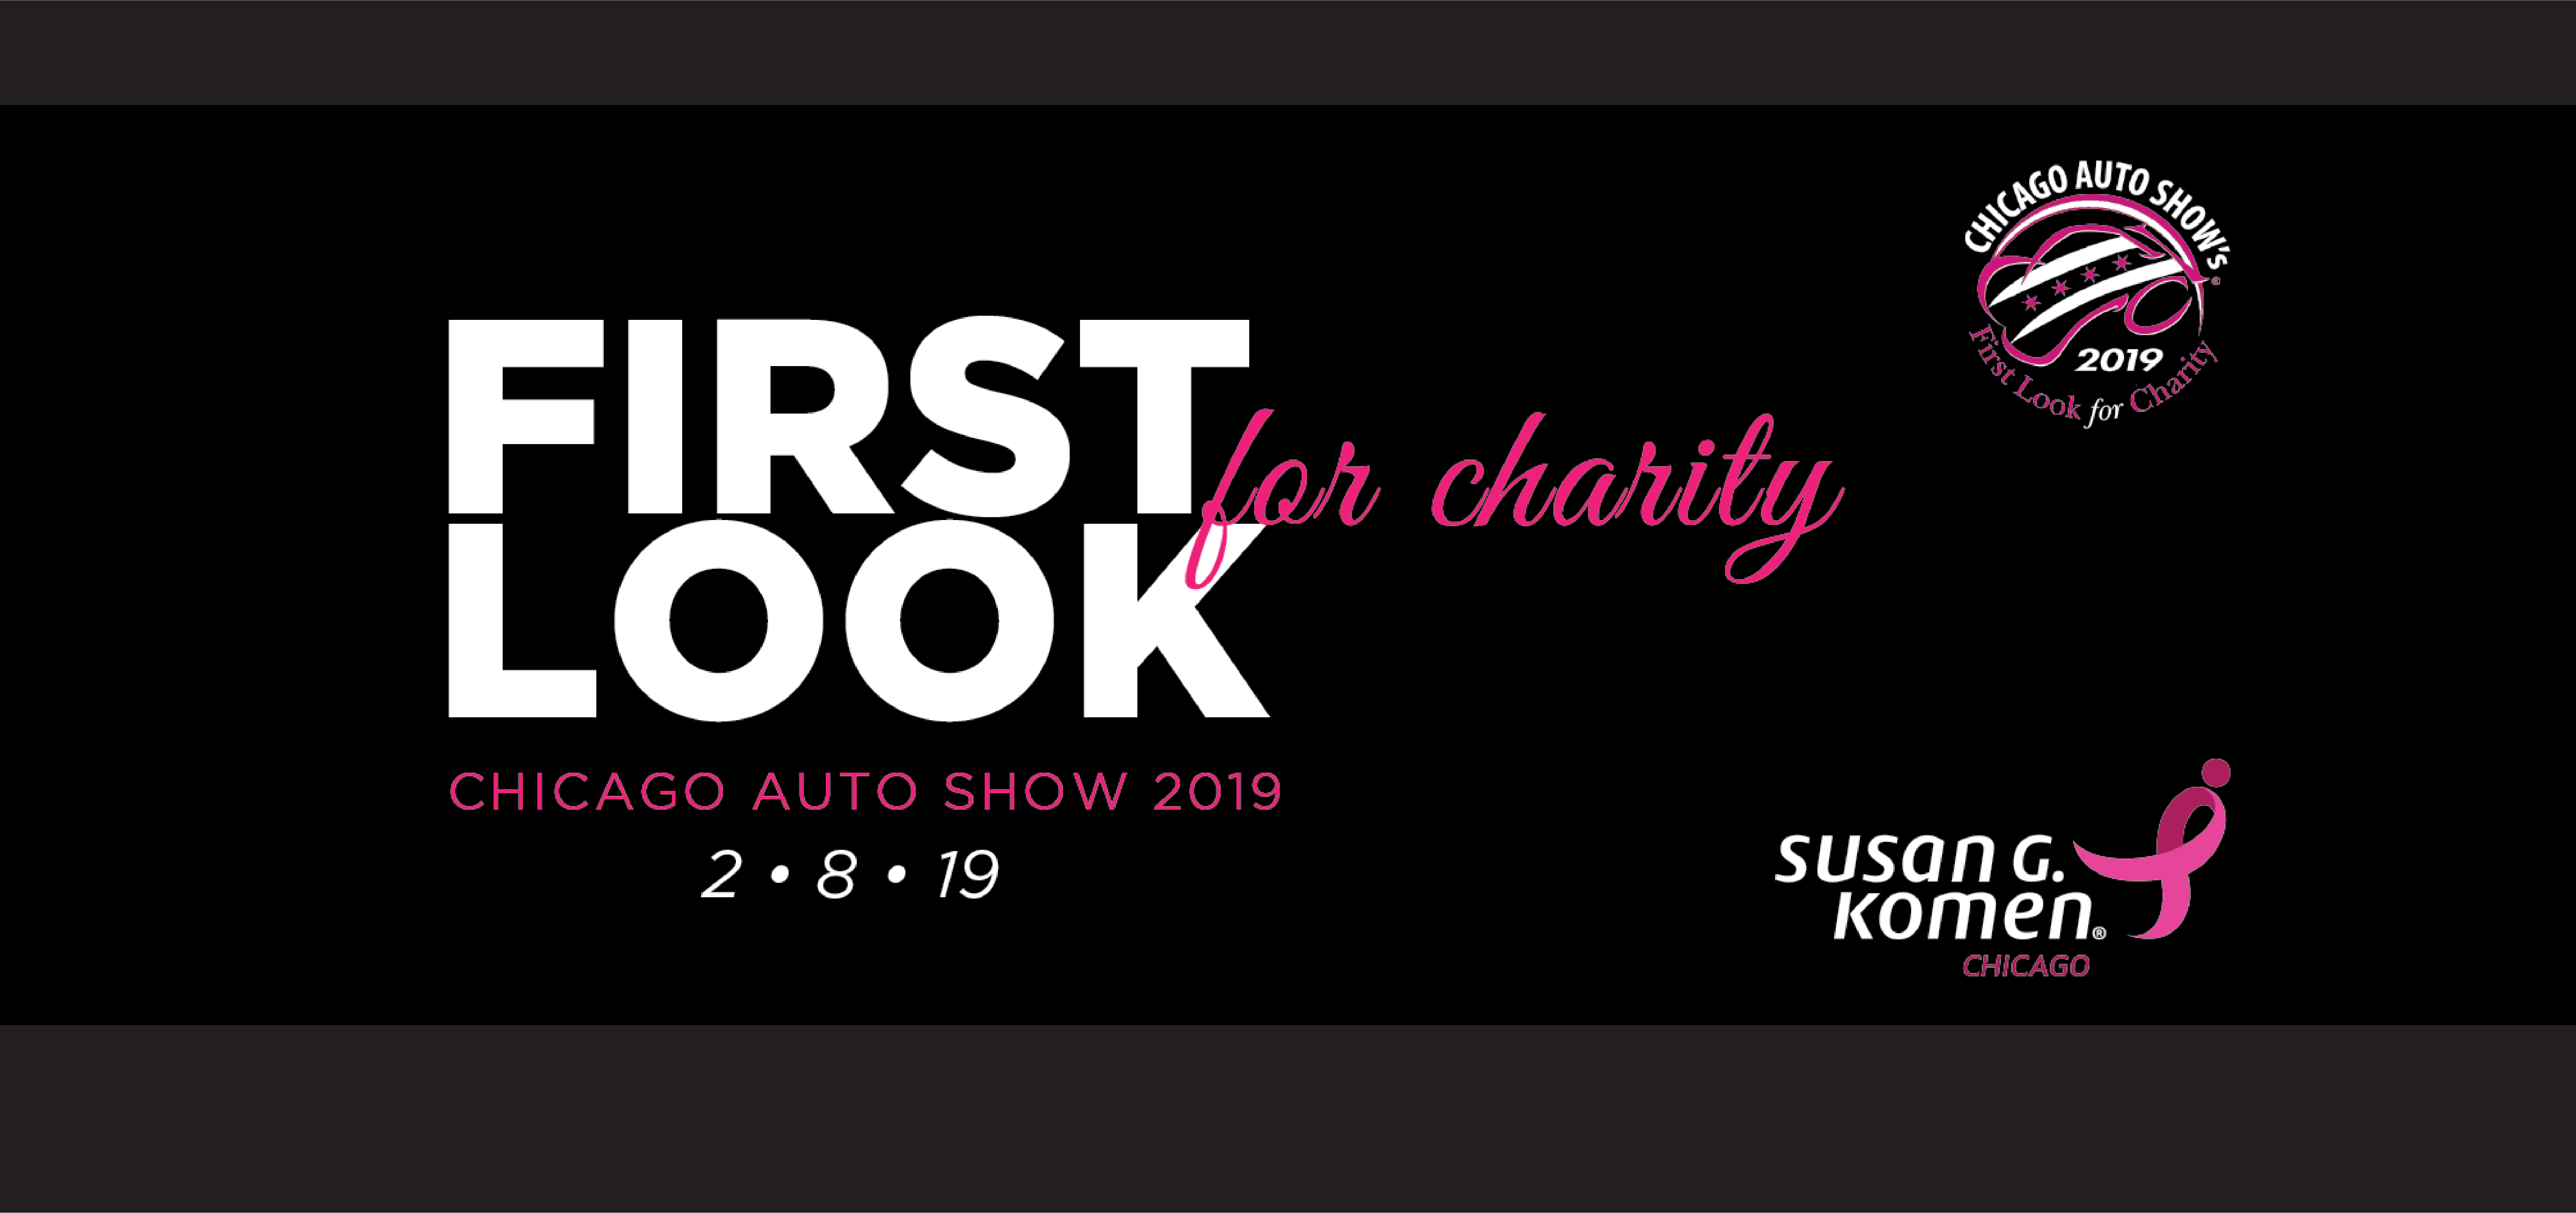 2019 First Look For Charity Chicago Auto Show Susan G Komen Chicago